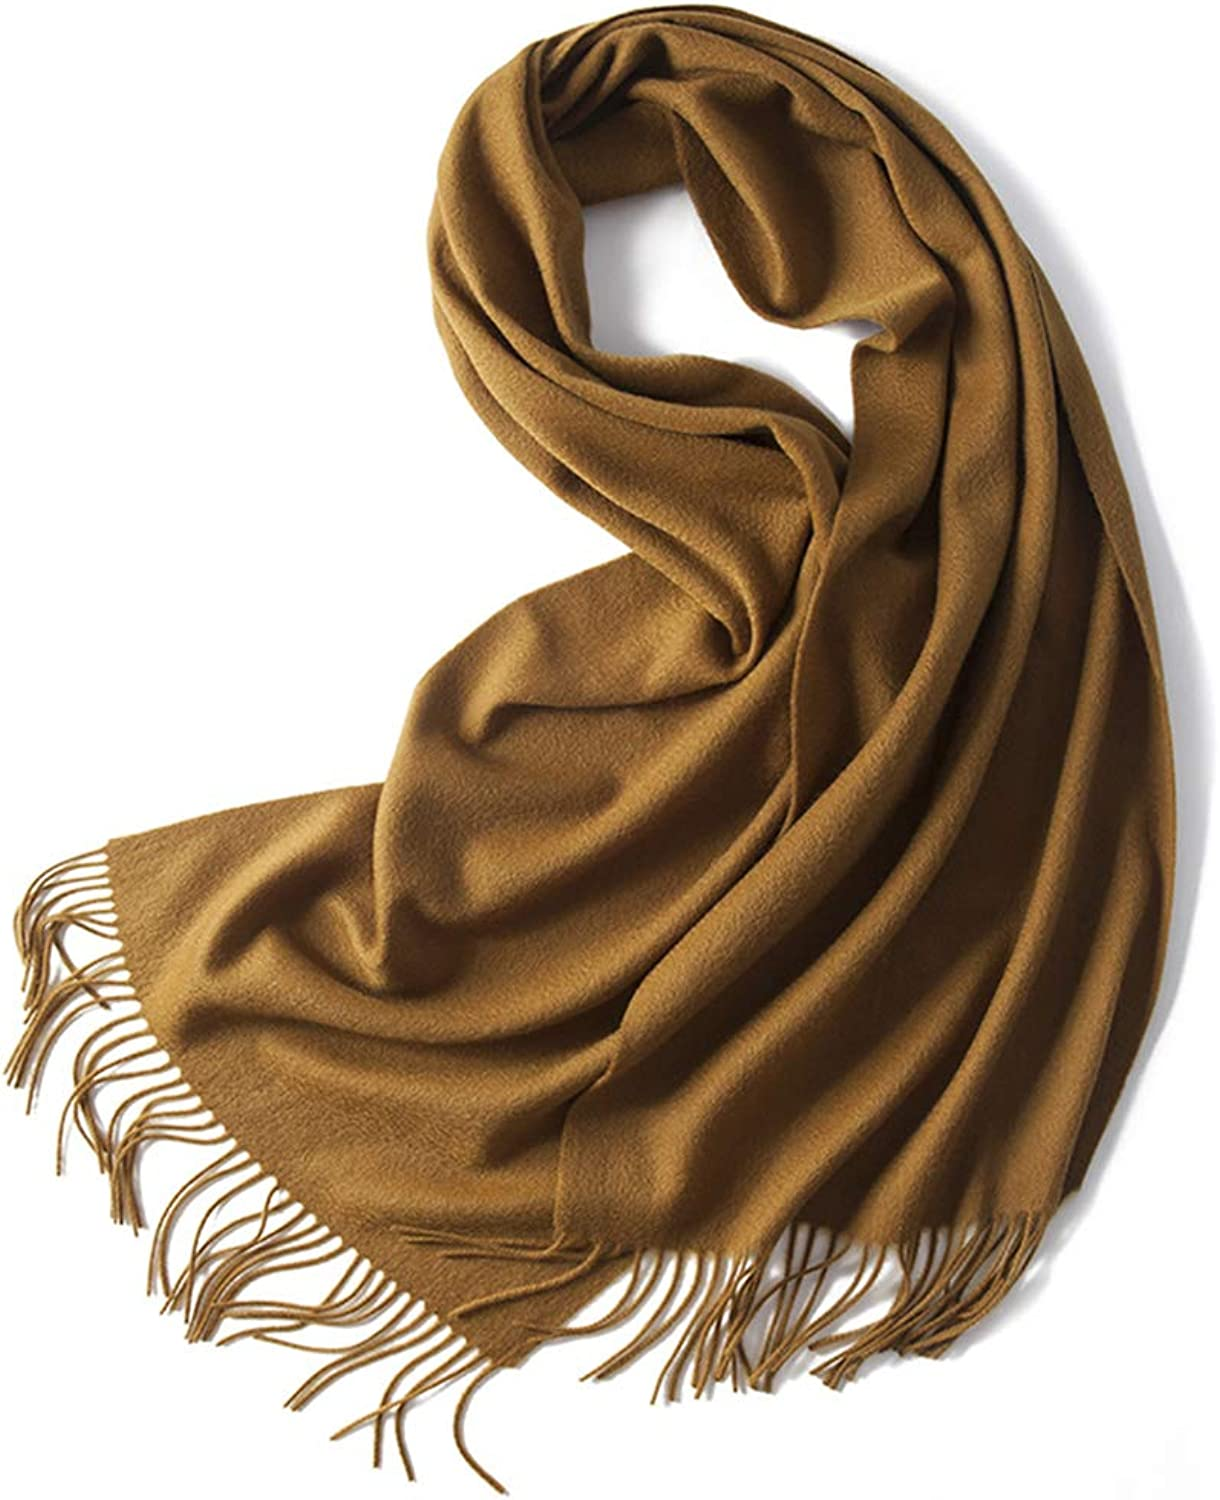 Cold Weather Scarves Scarf Shawl Ladies Scarf Men and Women Scarf Water Ripple Solid color Scarf Spring and Autumn Cashmere Scarf Ladies Wrap Fringe Shawl New Year Gift Wraps